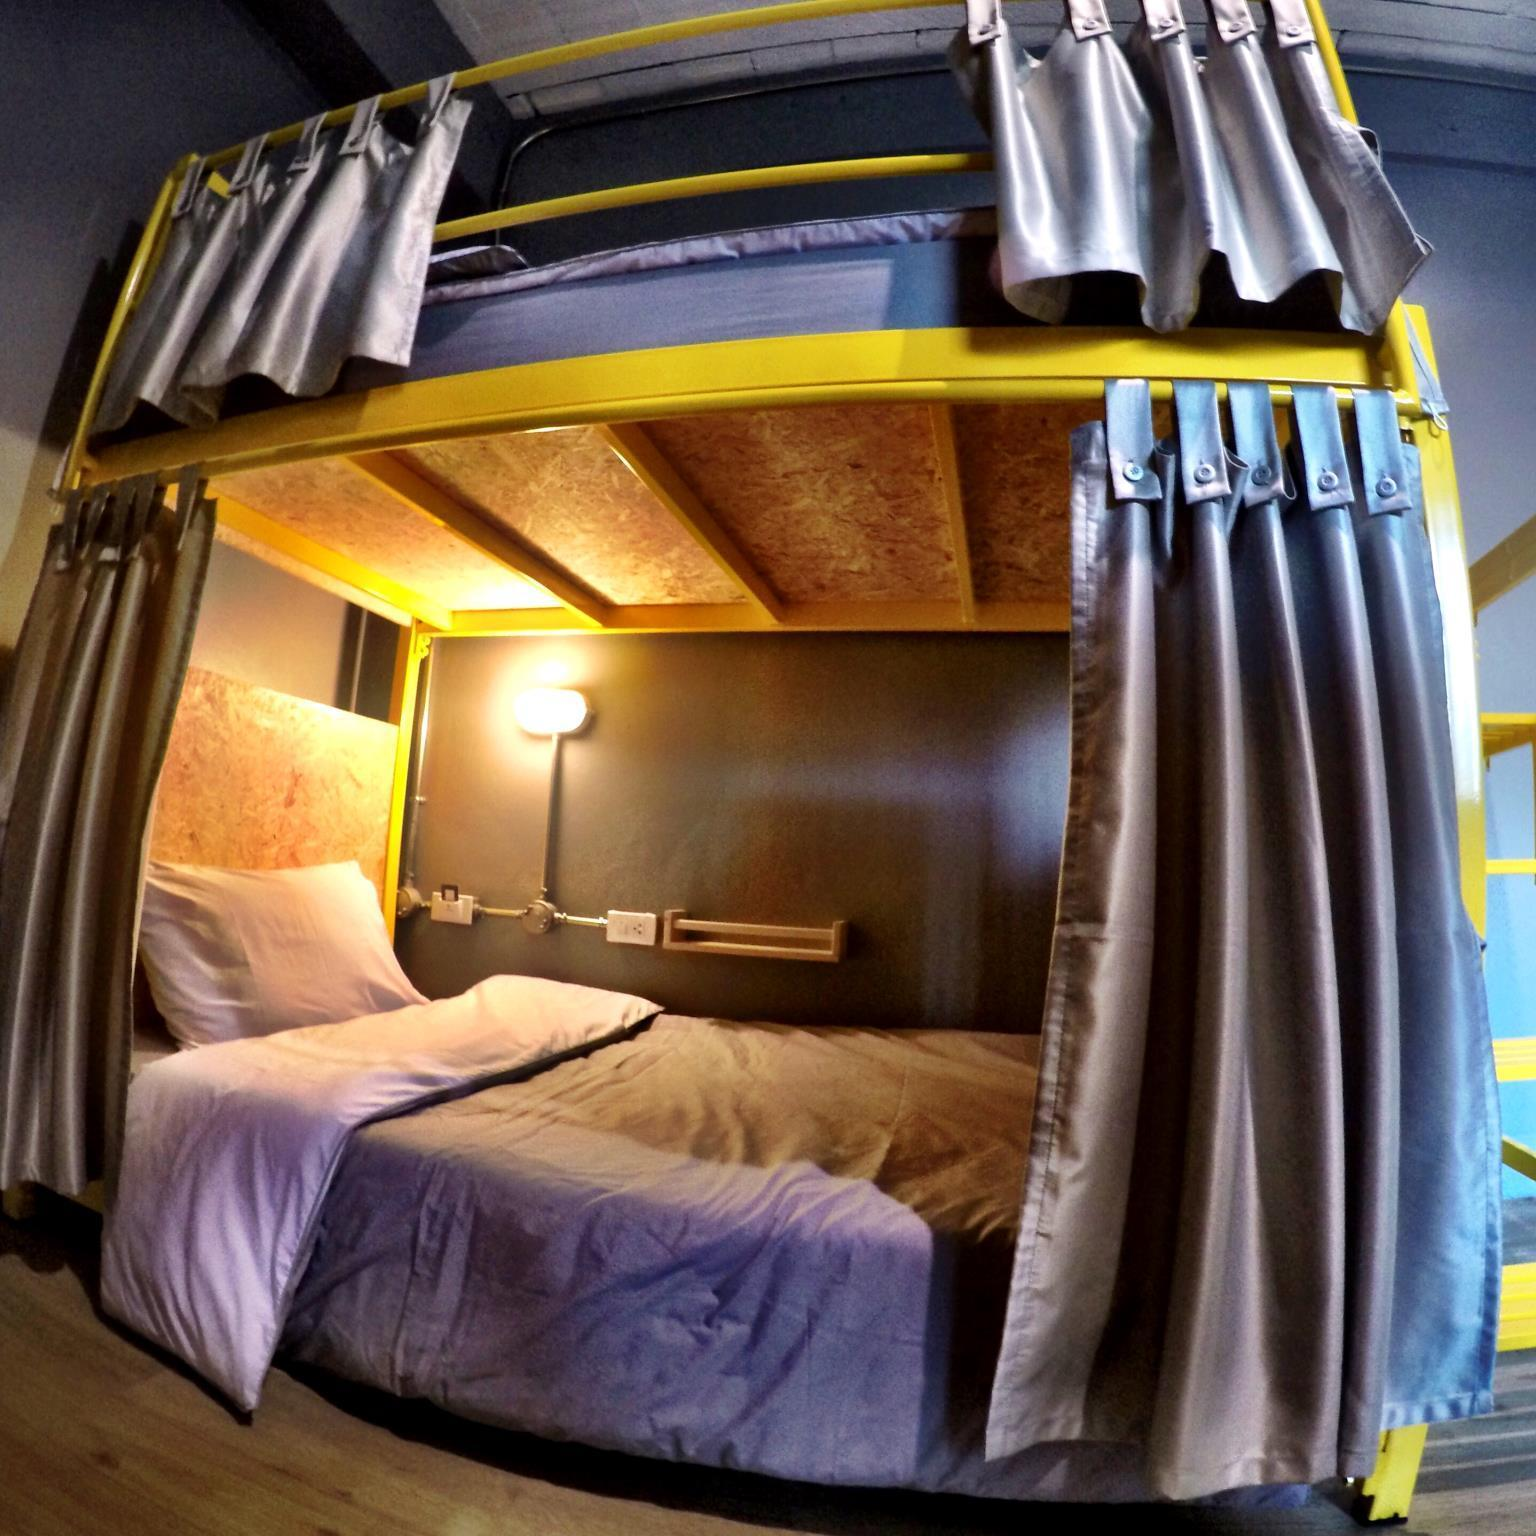 6 Bunk Bed in Female Dormitory Room